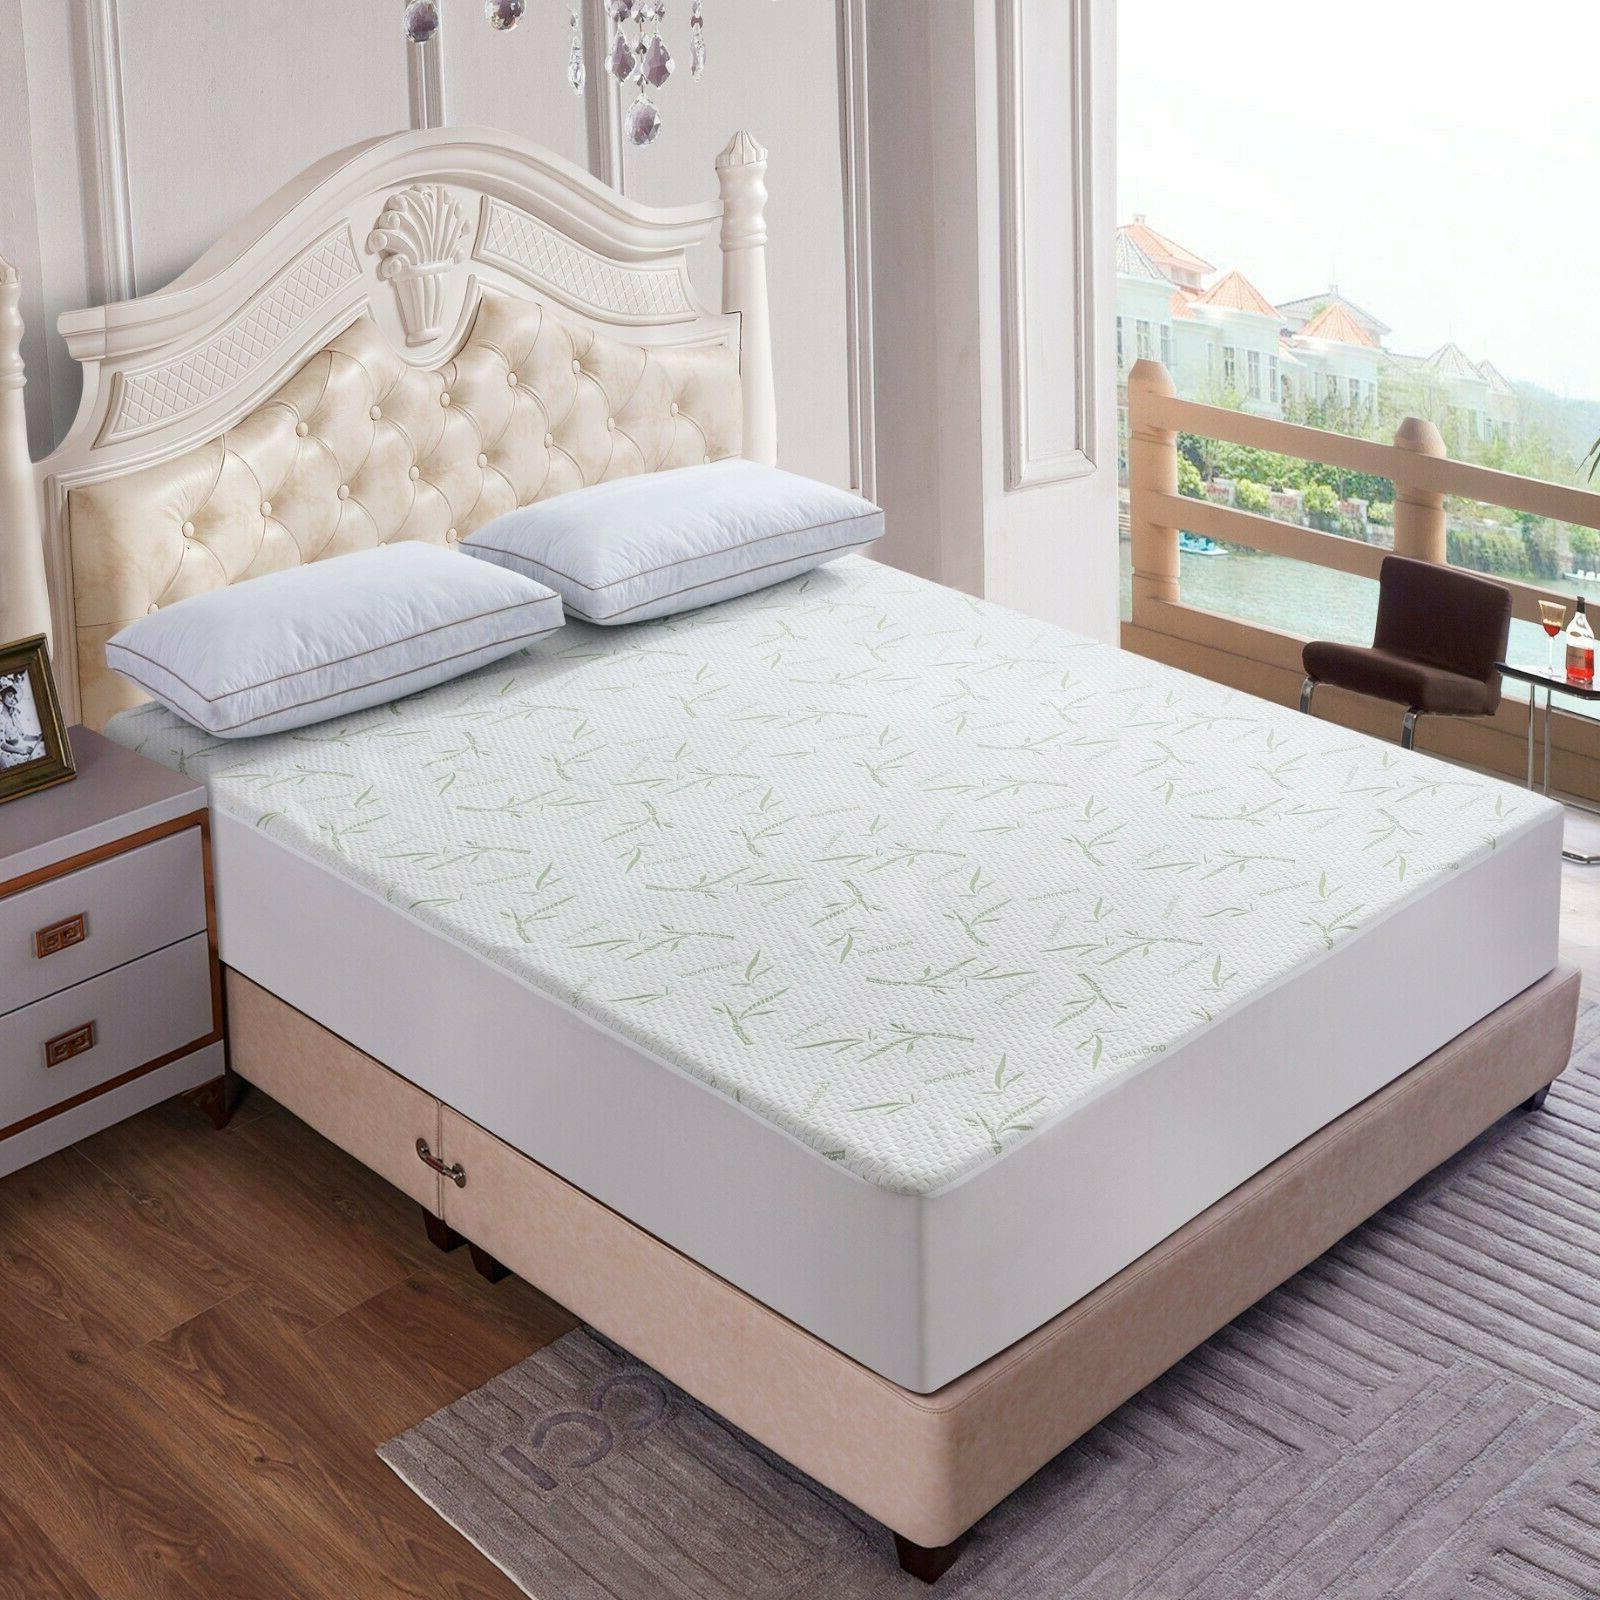 Waterproof Mattress Pad Protector Quilted Hypoallergenic Bed Cover